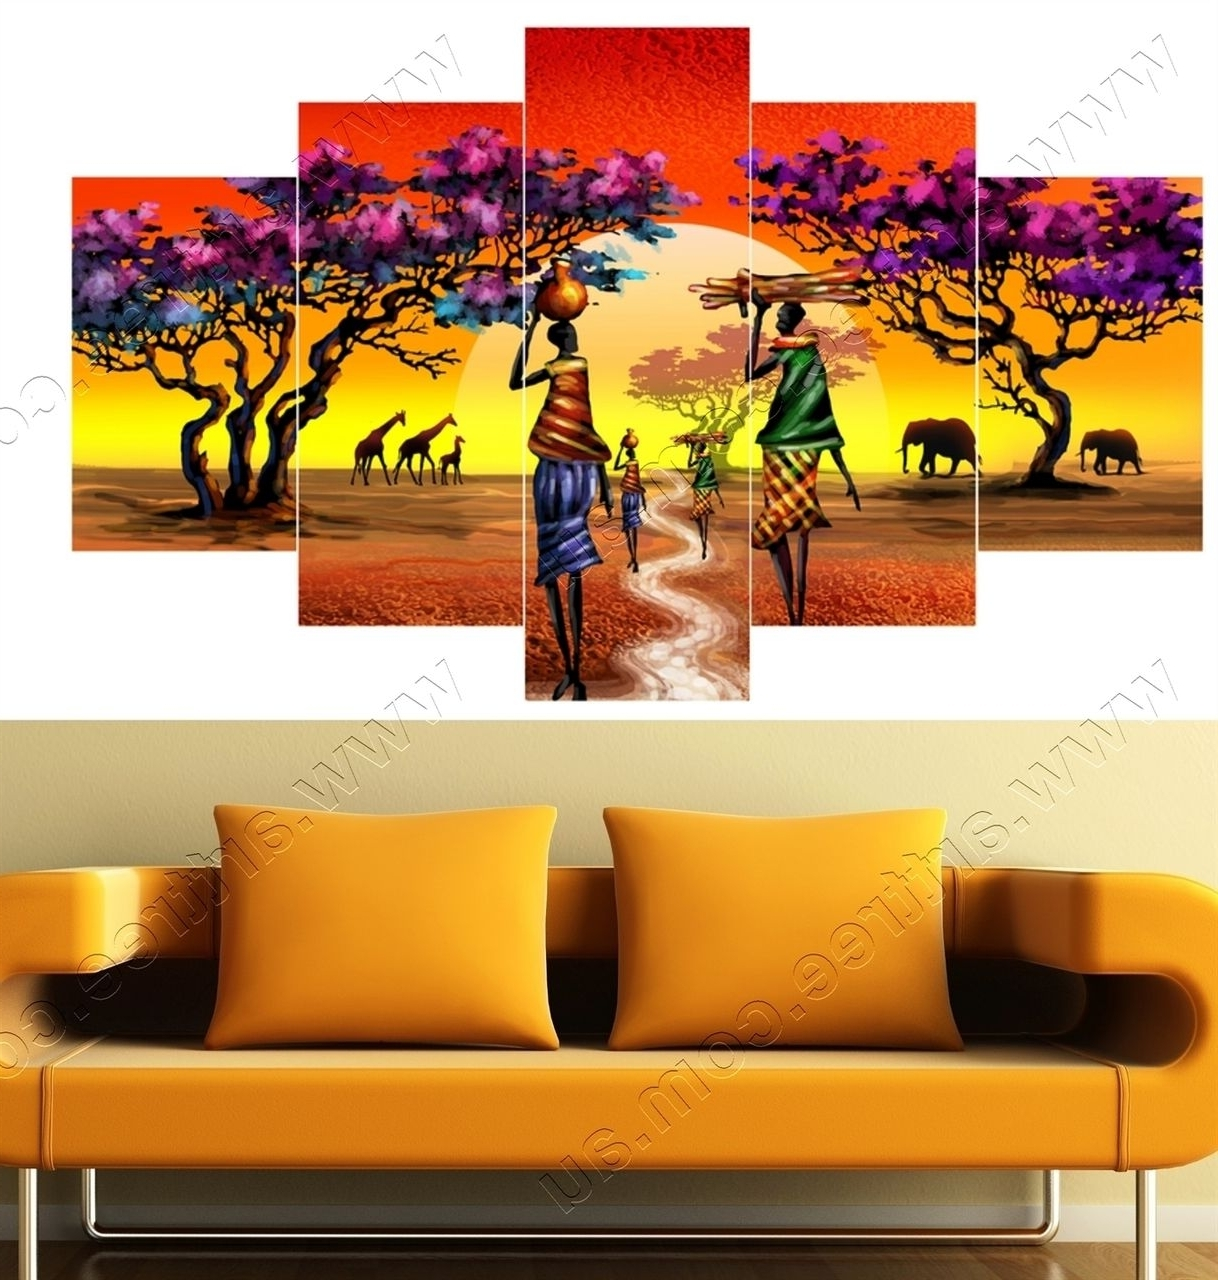 Widely Used Tribal African Jungle Safari Canvas Print #tribalprint #africanart Intended For Geelong Canvas Wall Art (View 15 of 15)